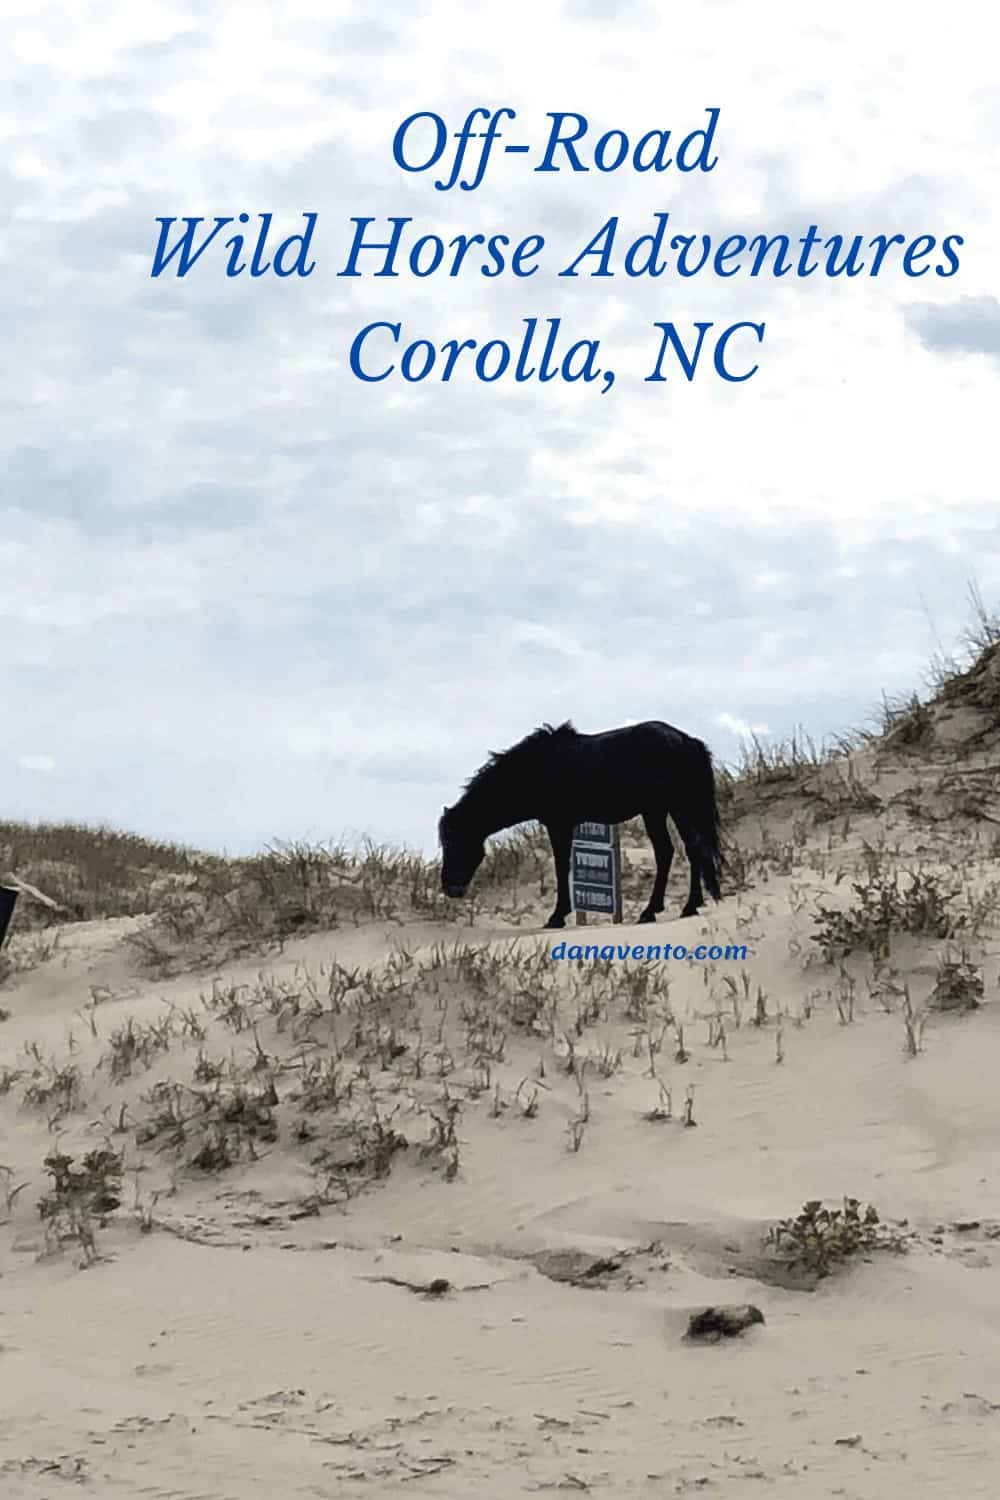 Horse on Sand Dune in Corolla, NC